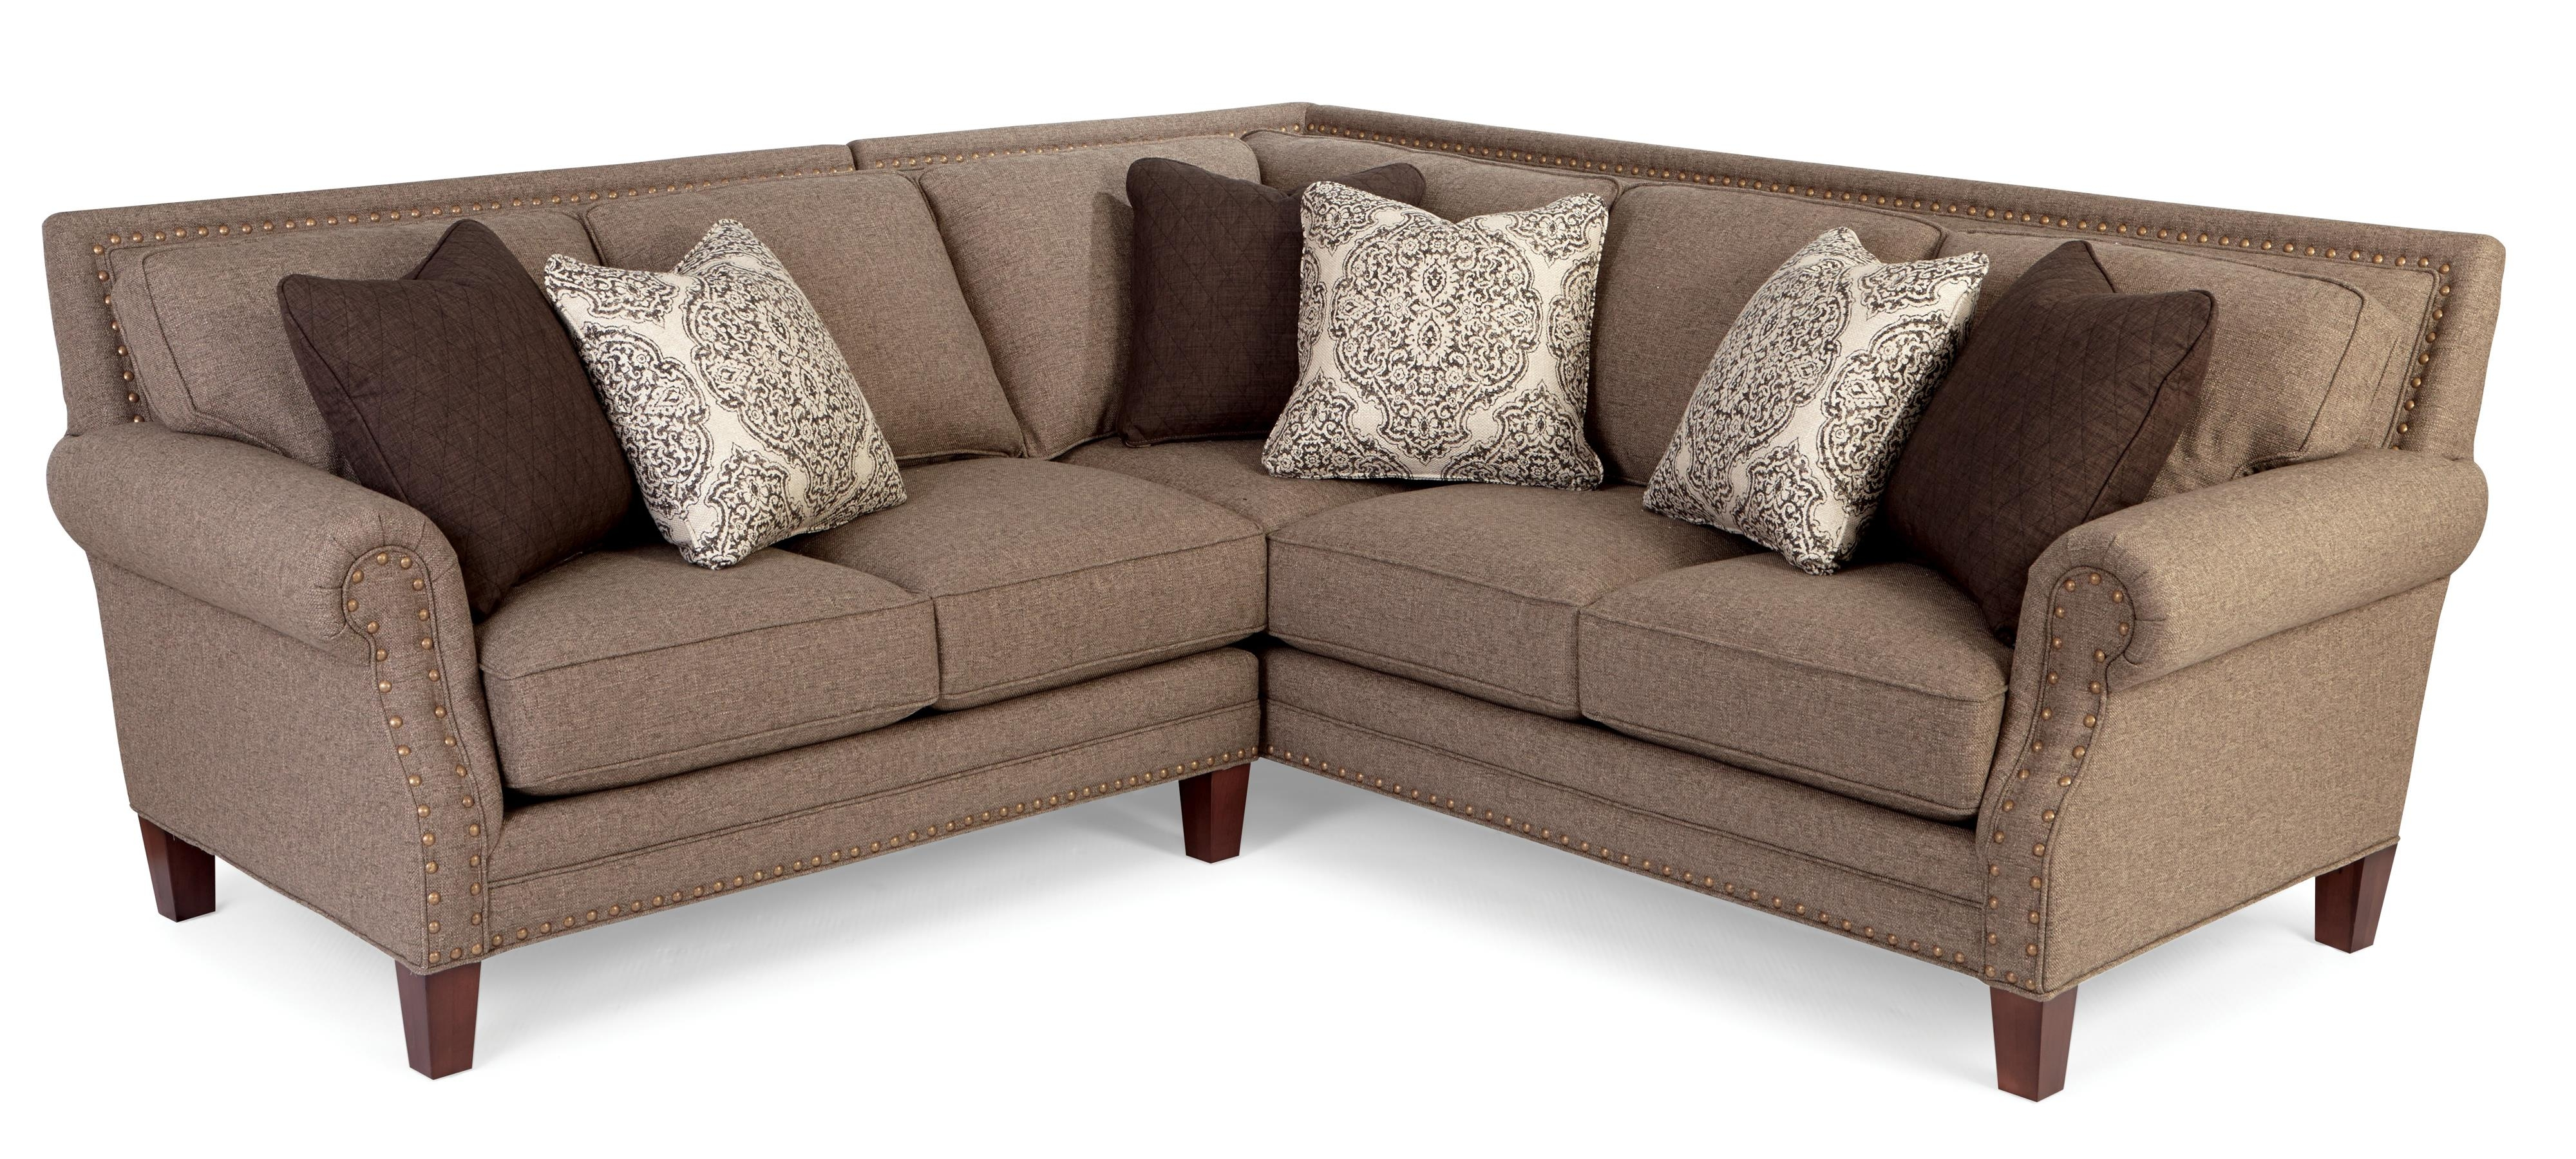 Two Piece Sectional Sofa With Rolled Arms And Light Brass With Craftmaster Sectional Sofa (View 12 of 15)